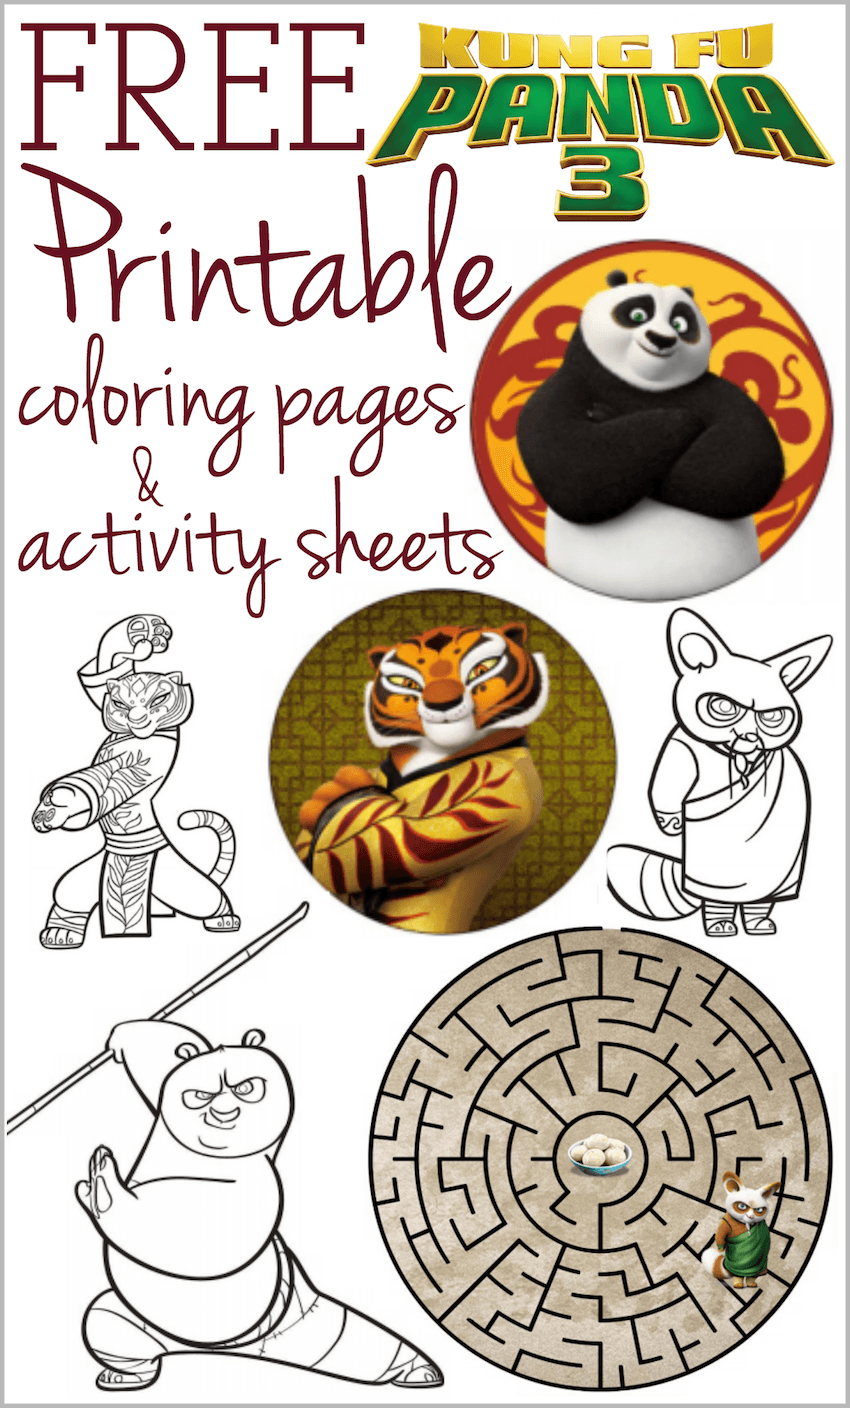 Printable coloring pages kung fu panda - Kung Fu Panda 3 Printable Coloring Pages